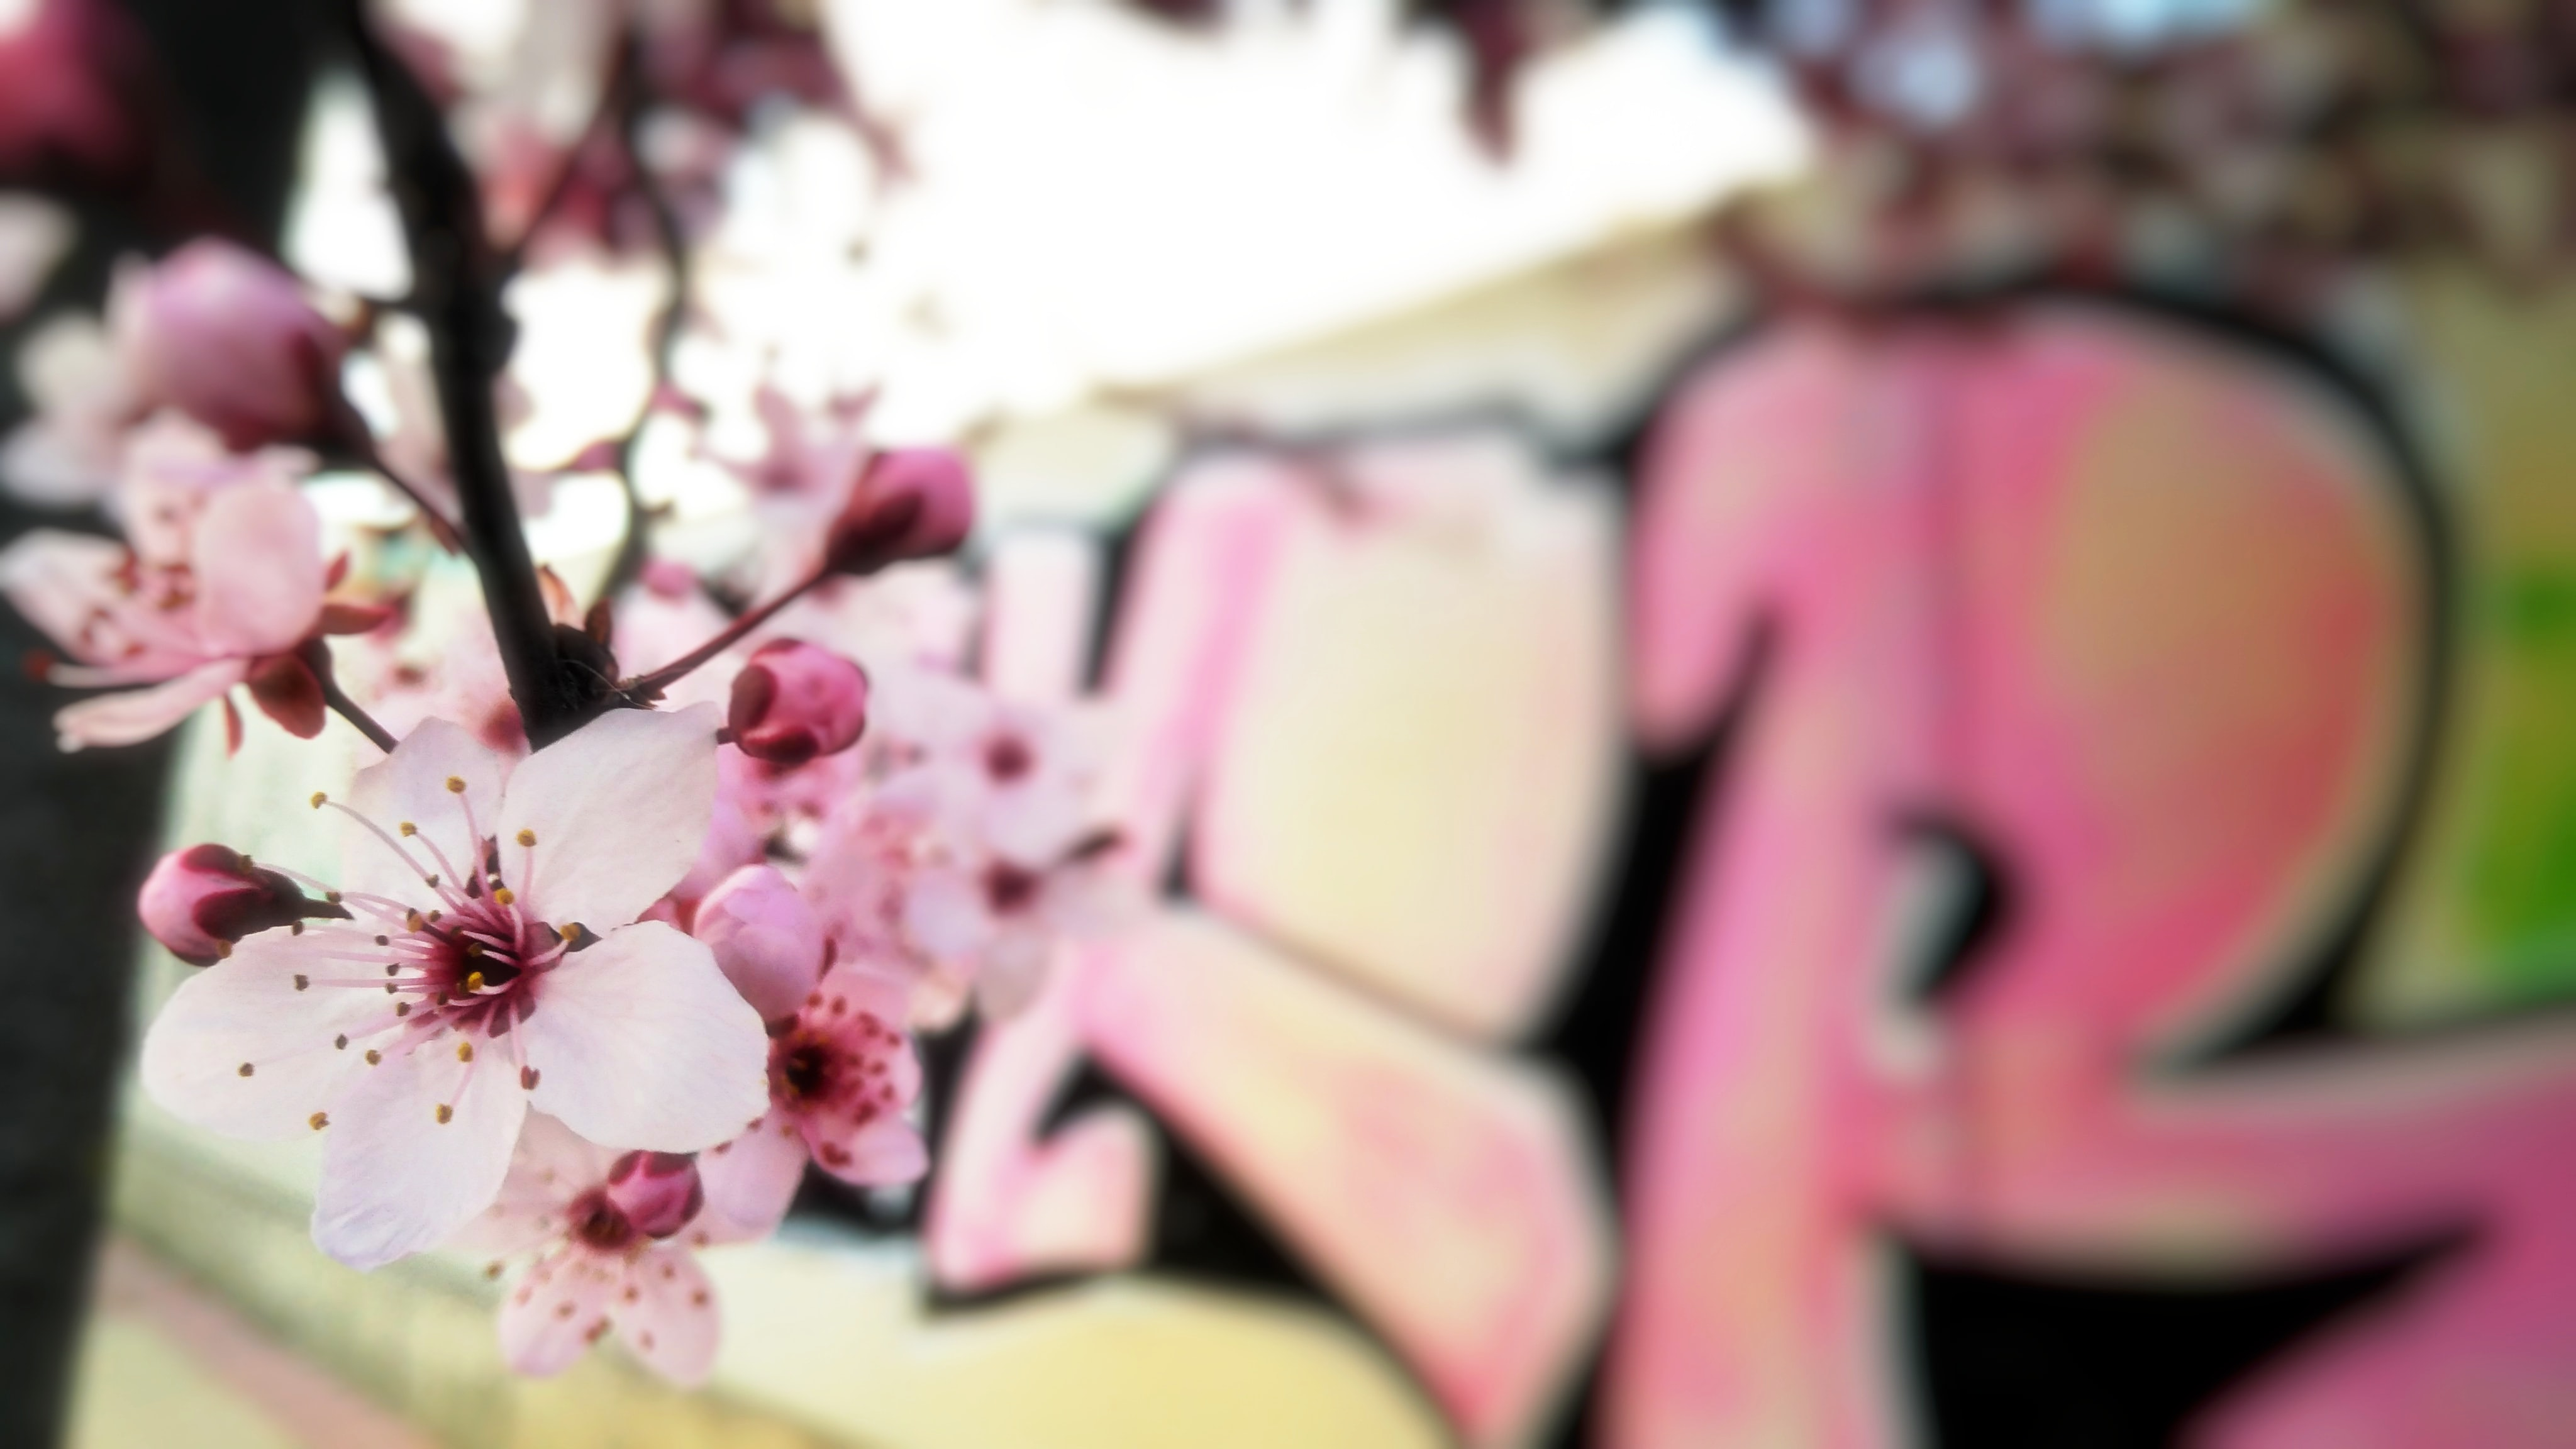 selective focus photography of cherry blossoms during daytime